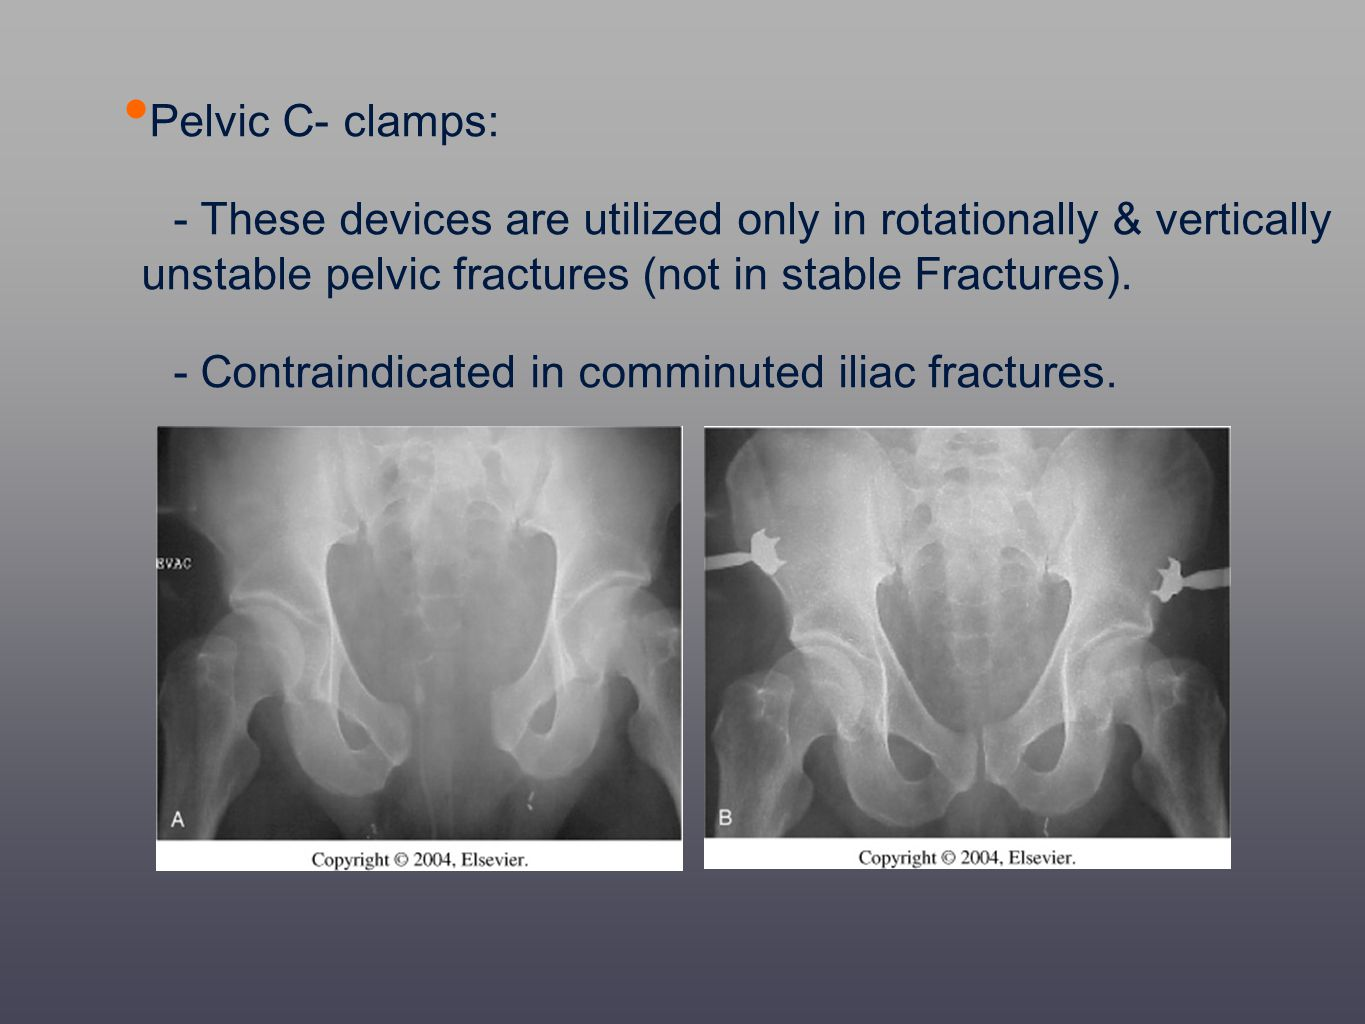 Pelvic C- clamps: - These devices are utilized only in rotationally & vertically unstable pelvic fractures (not in stable Fractures).